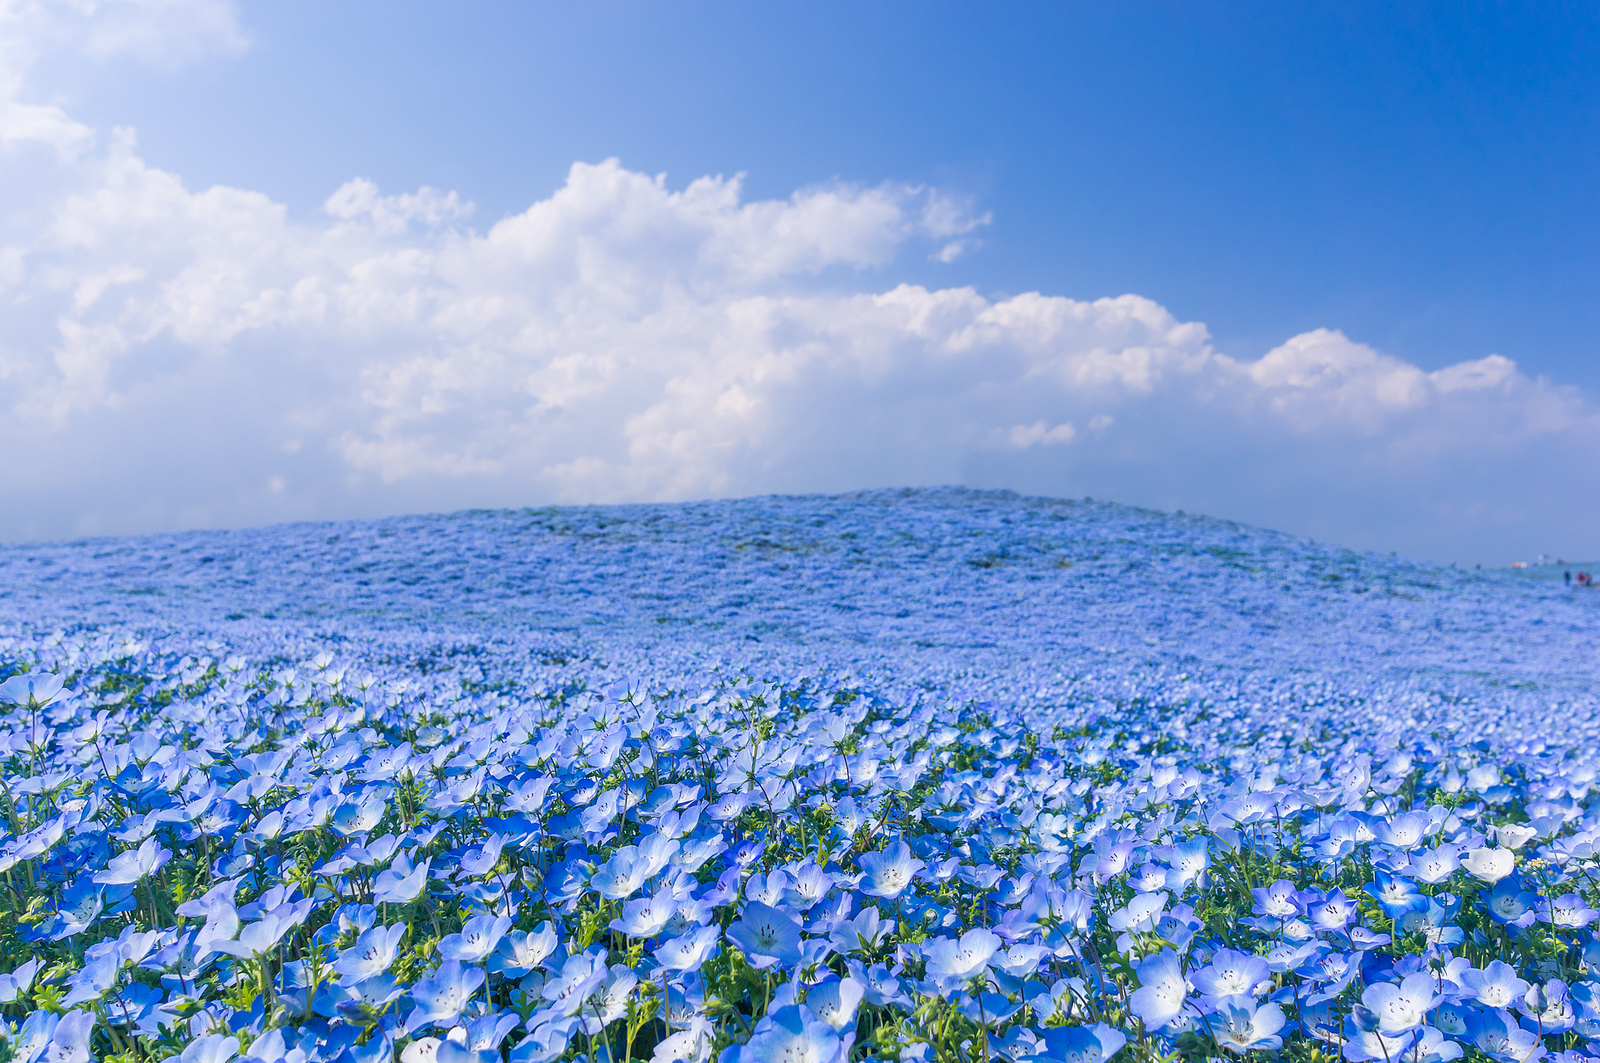 A Sea of 4.5 Million Baby Blue Eye Flowers in Japan's Hitachi Seaside Park